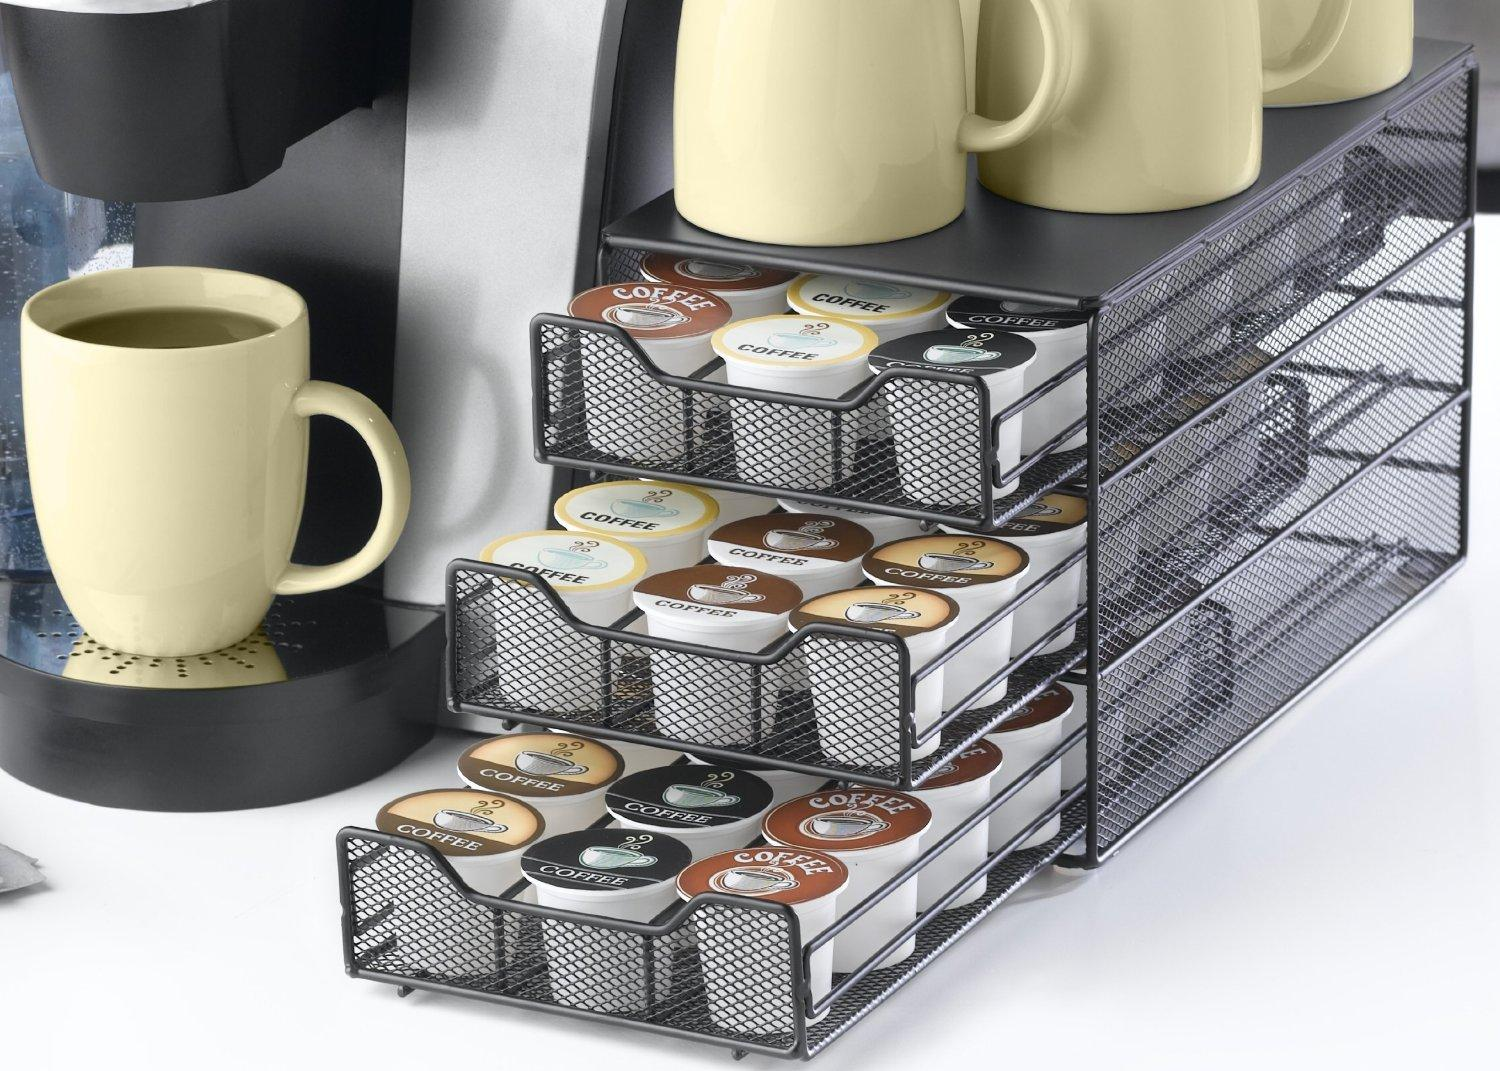 Keurig Brewed 3-tiered K-Cup Drawer-Holds 54 K-Cup Packs (Prime Members Only)